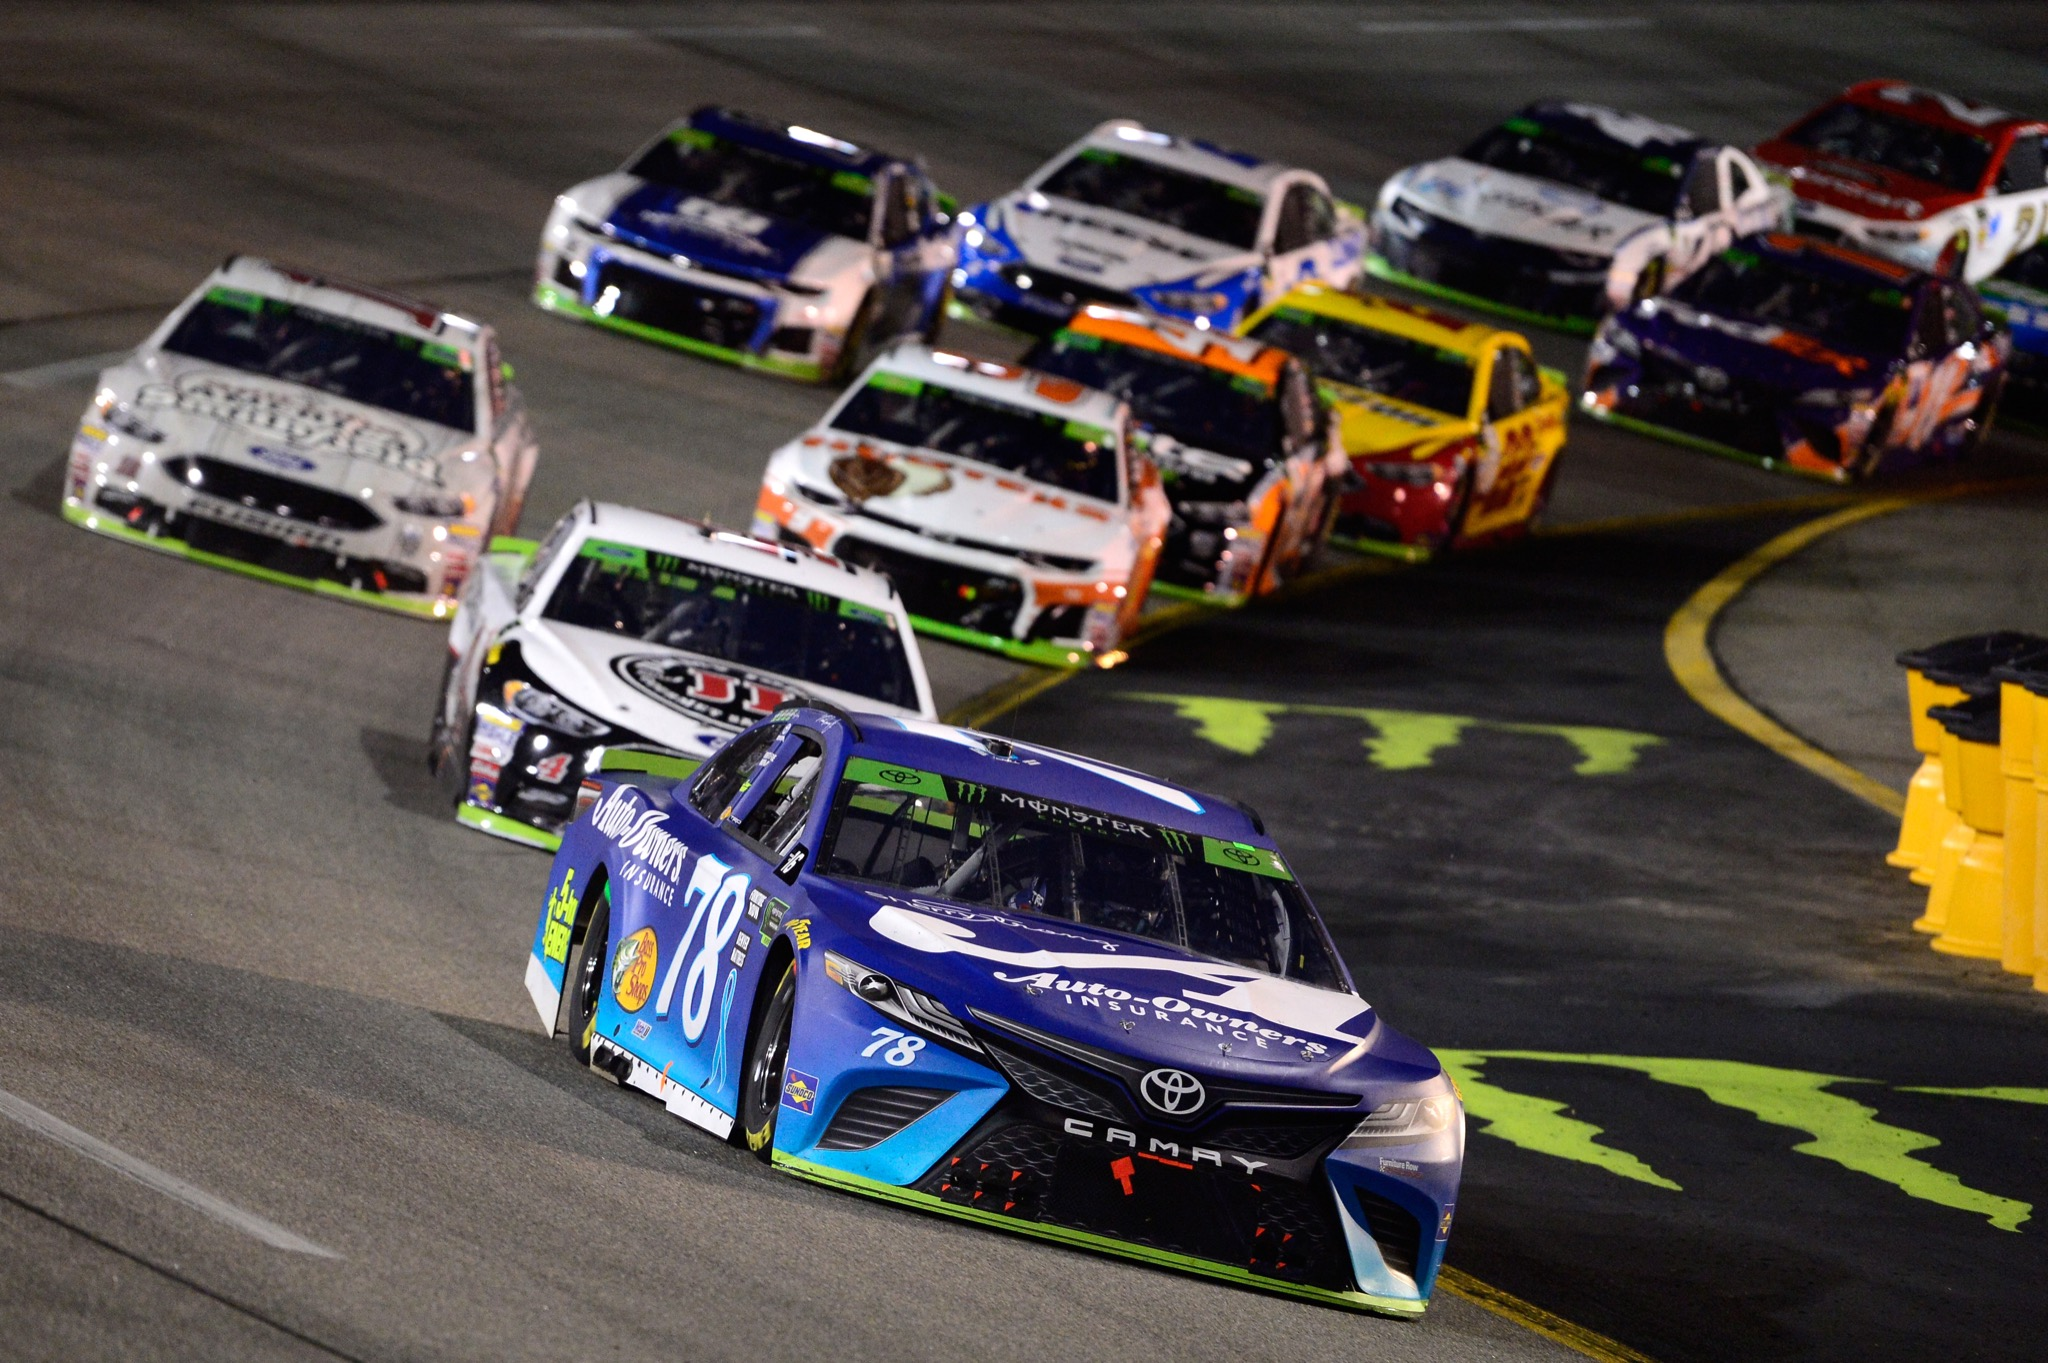 Martin Truex Jr. leads a pack of cars during the Monster Energy NASCAR Cup Series Federated Auto Parts 400 at Richmond Raceway on September 22, 2018 in Richmond, Virginia.